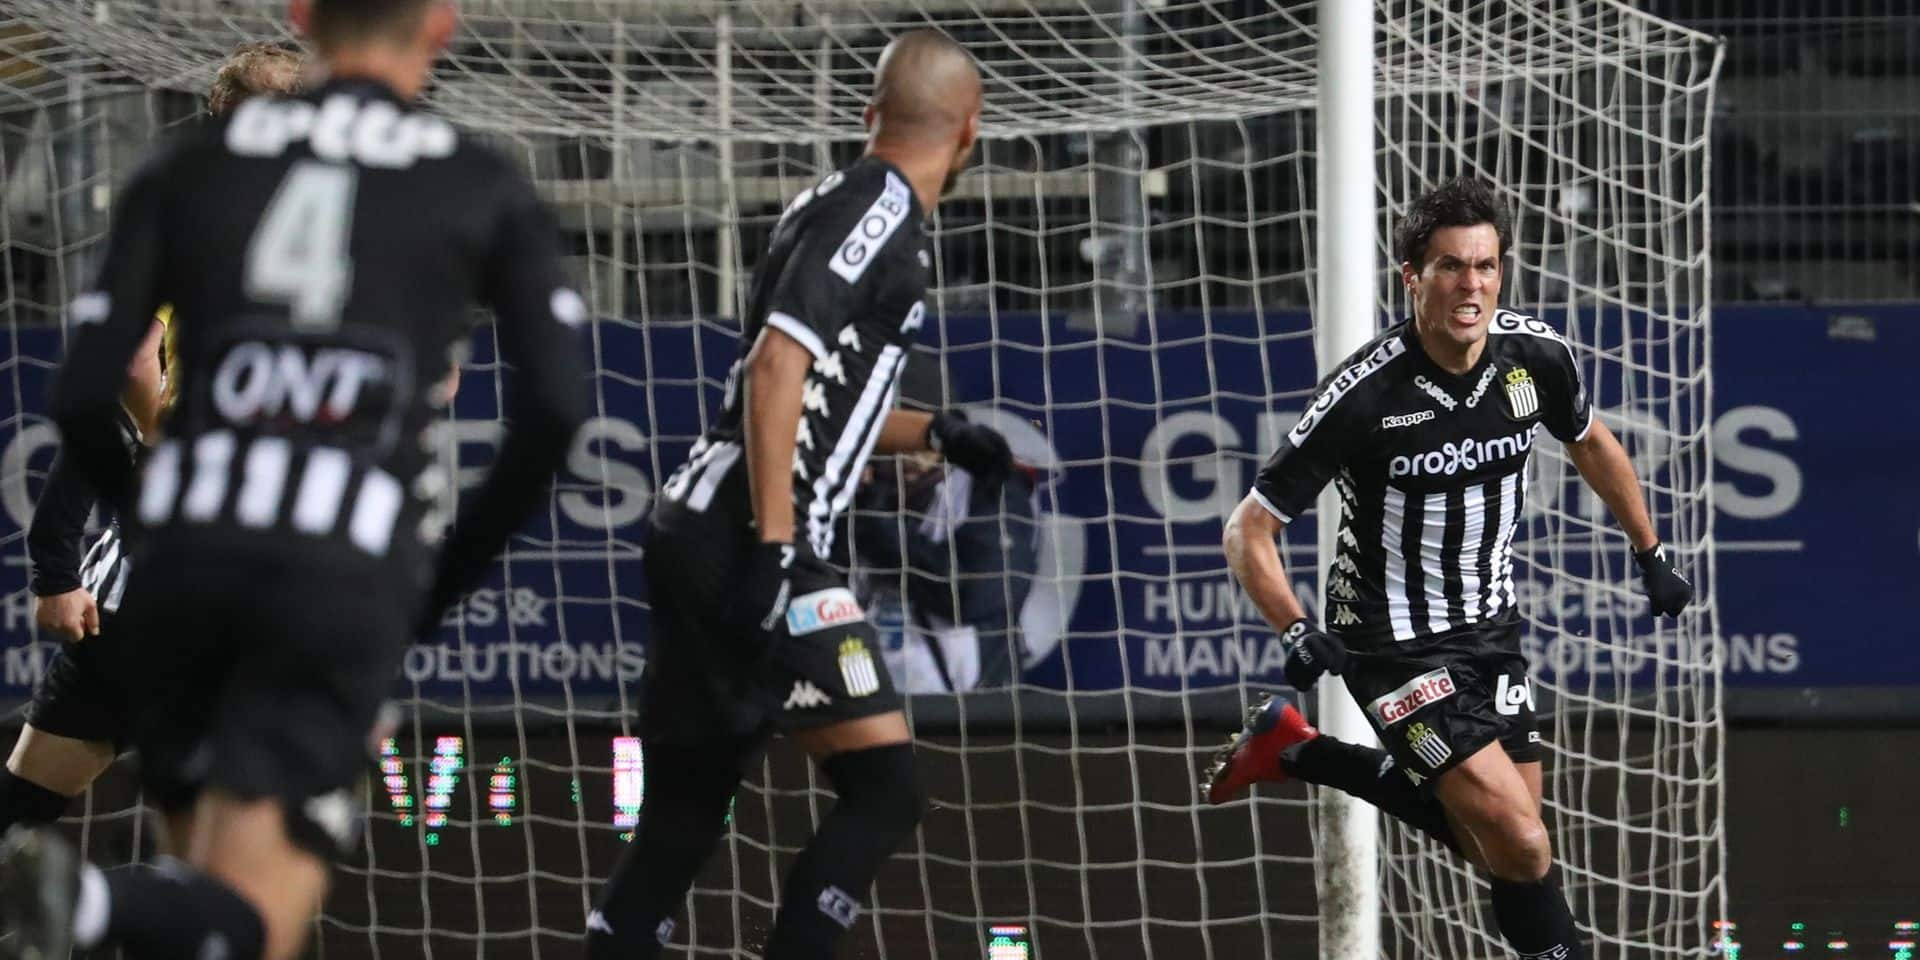 Charleroi's Jeremy Perbet celebrates after scoring during a soccer match between Sporting Charleroi and KV Oostende, Saturday 09 February 2019 in Charleroi, on the 25th day of the 'Jupiler Pro League' Belgian soccer championship season 2018-2019. BELGA PHOTO VIRGINIE LEFOUR